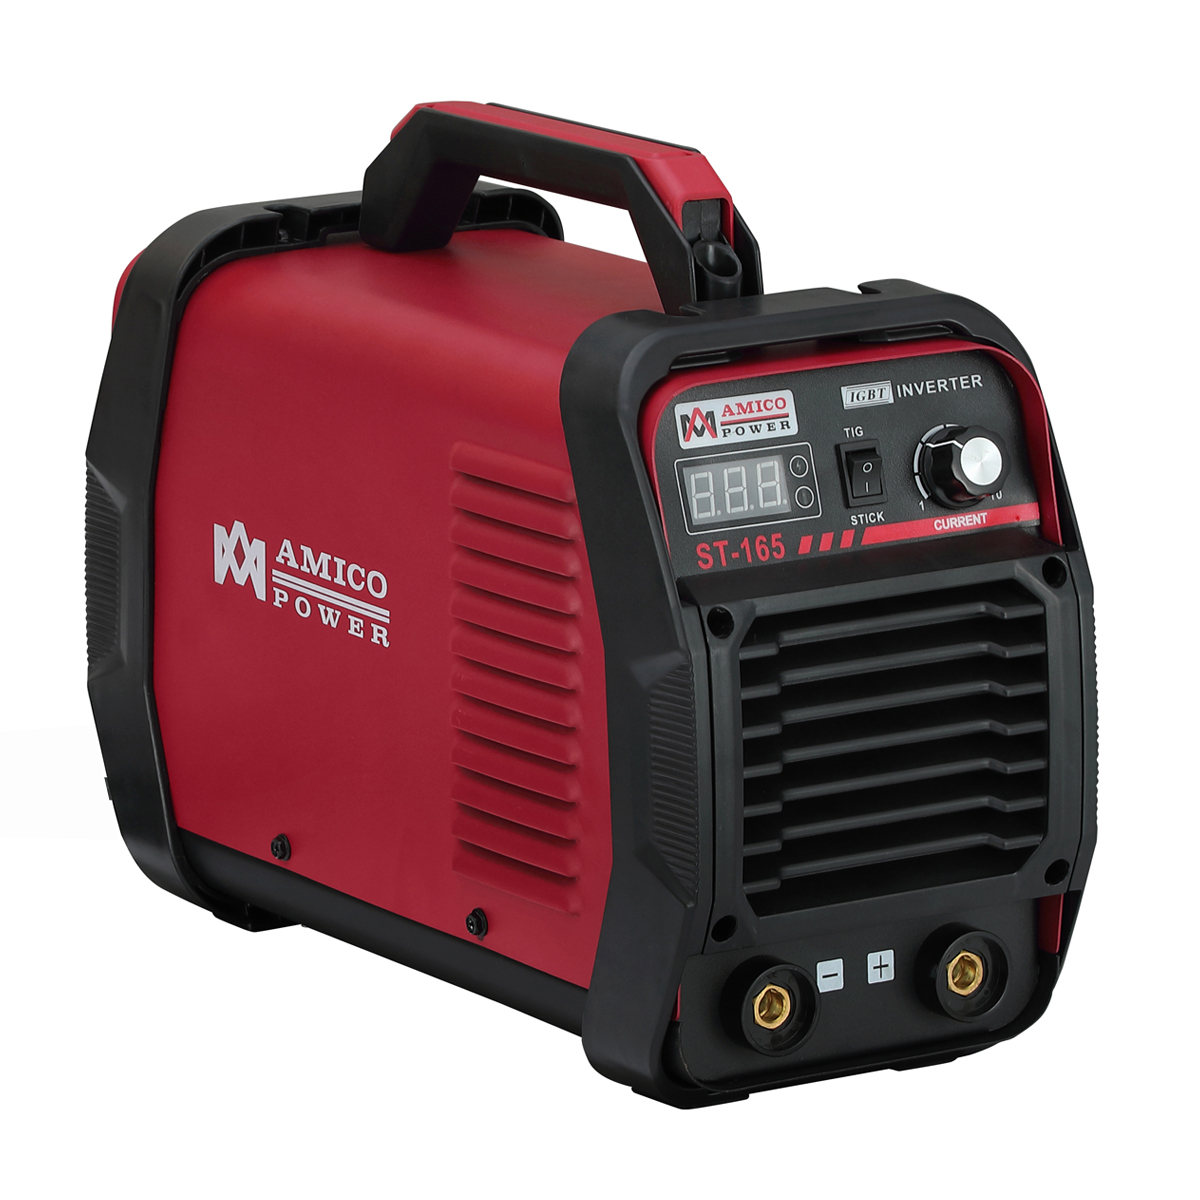 ST-165, 165 Amp Stick Arc with Lift-TIG Welder 115 & 230V Dual Voltage IGBT Inverter Welding